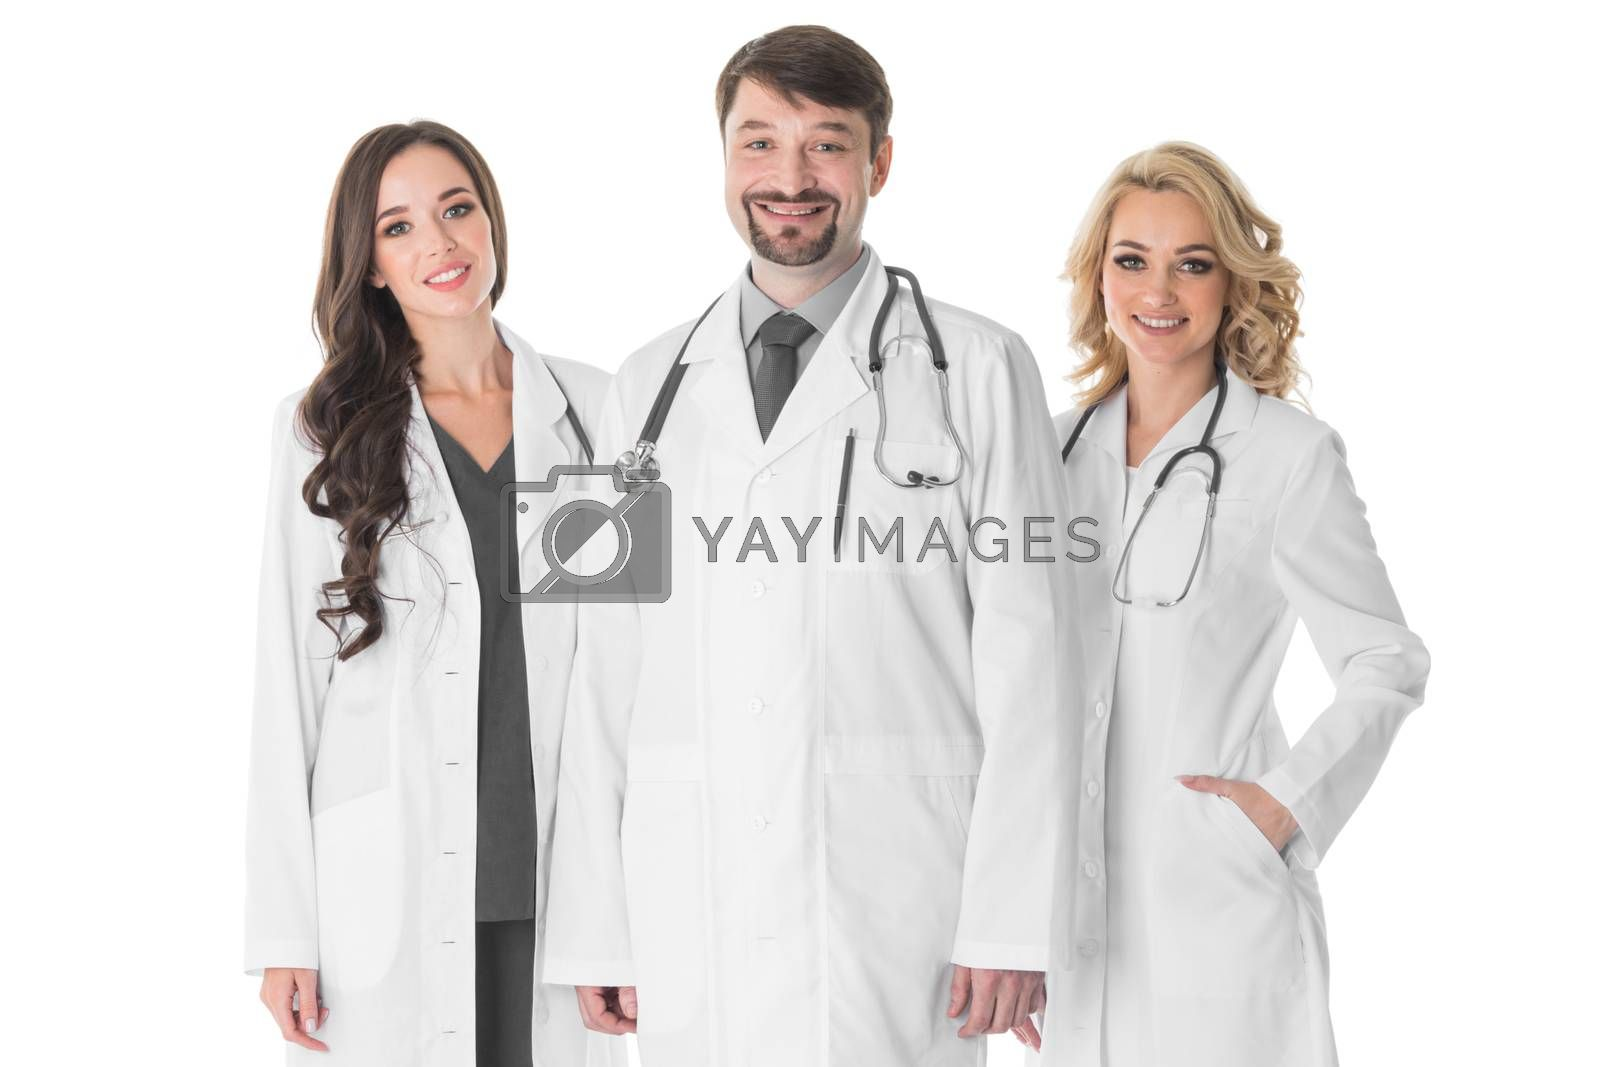 Medical team of doctors isolated by Yellowj